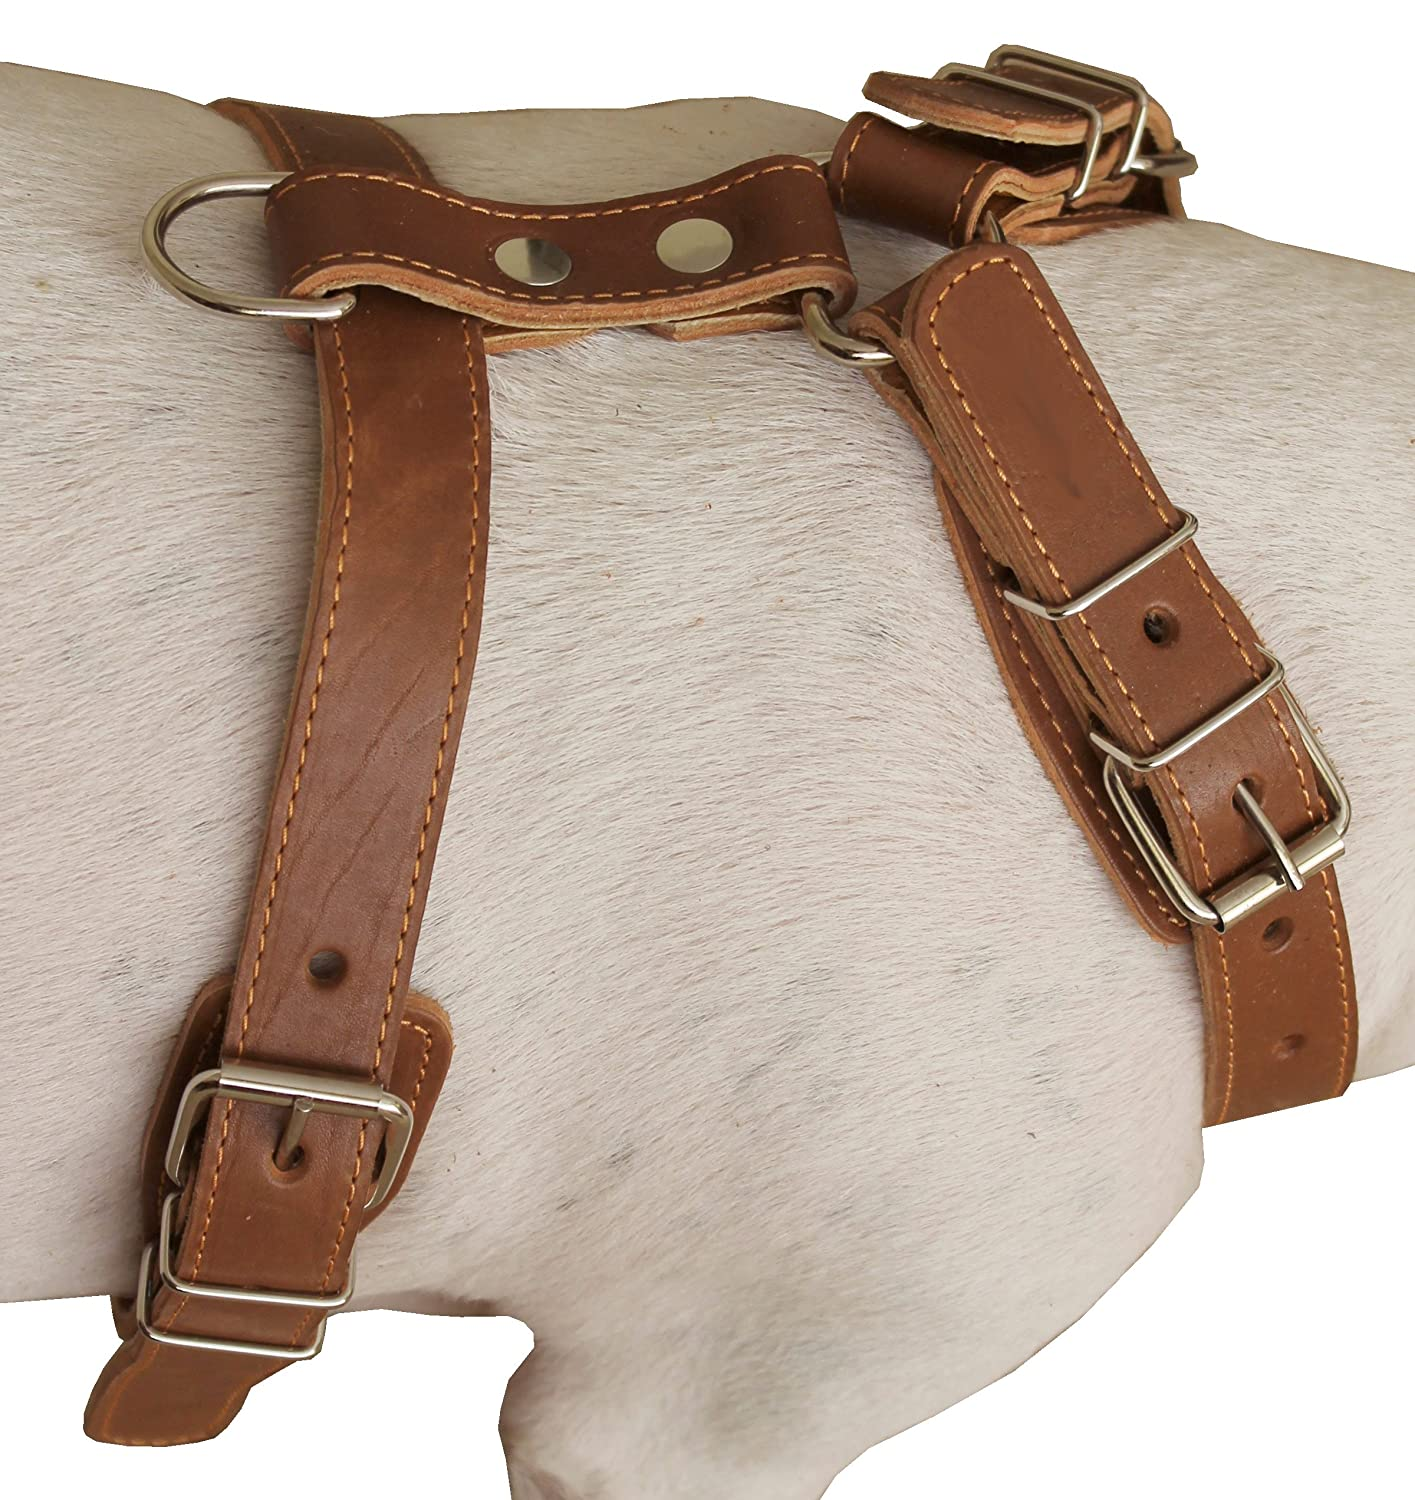 Genuine Leather Dog Harness 25-30 Chest 1 Wide Adjustable Straps for Medium and Large Dogs